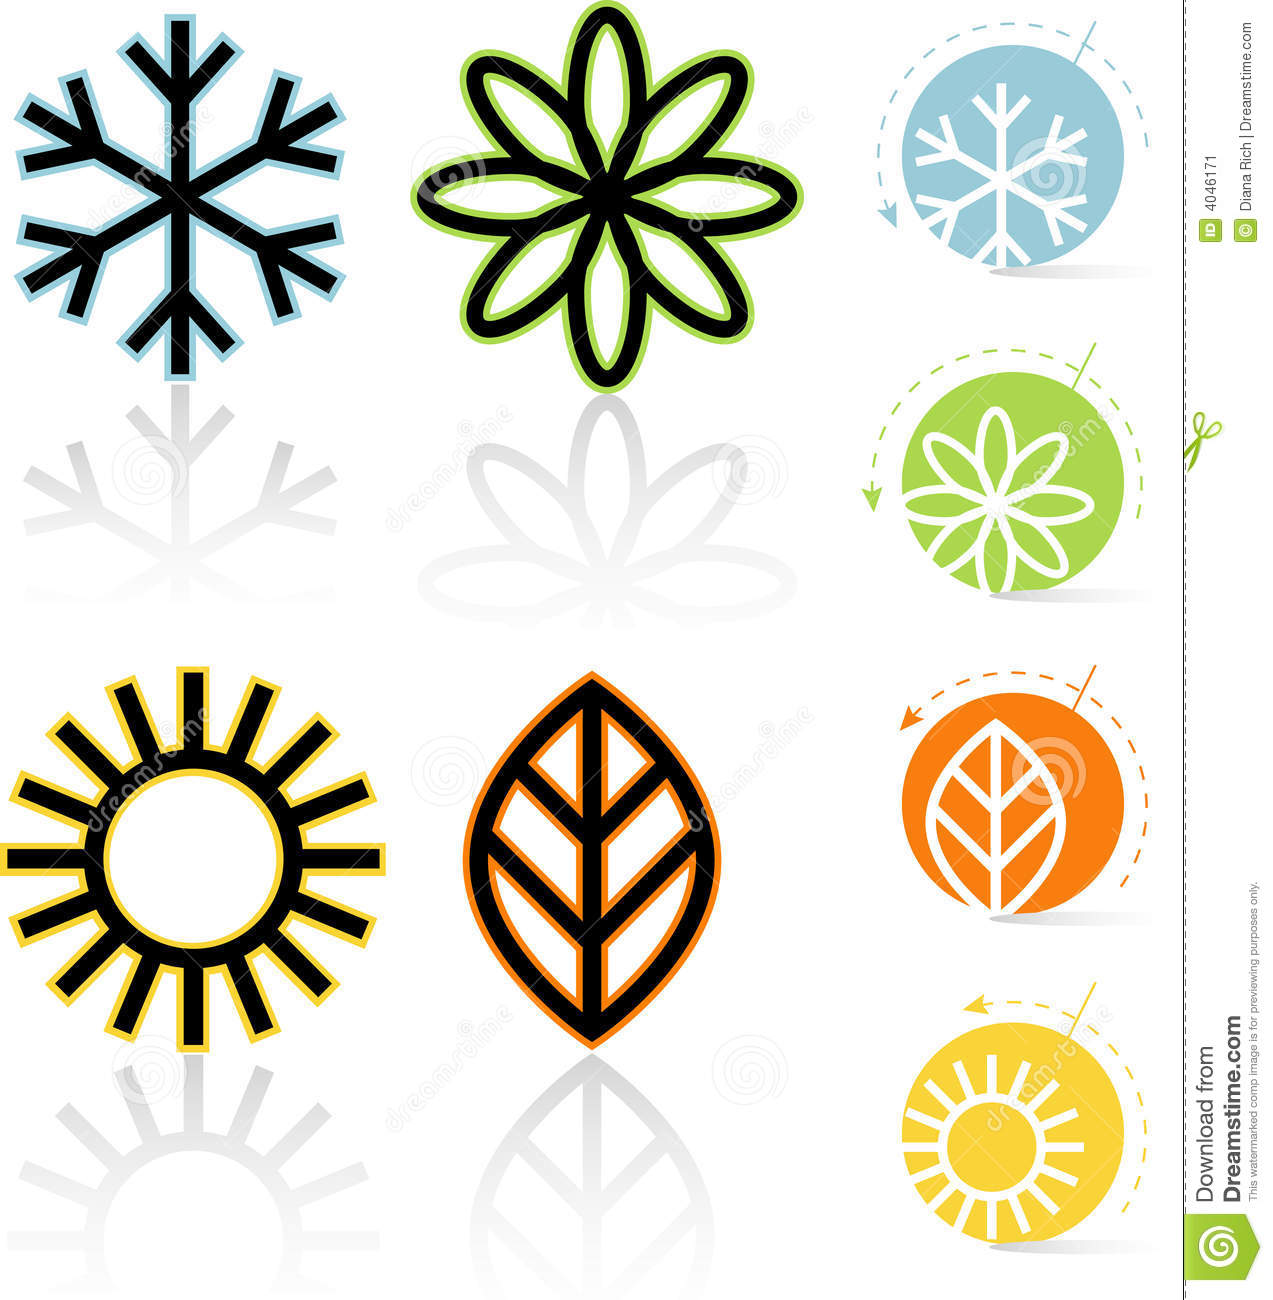 Four Seasons Air Conditioning >> Four Seasons Icons stock vector. Illustration of autumn - 4046171